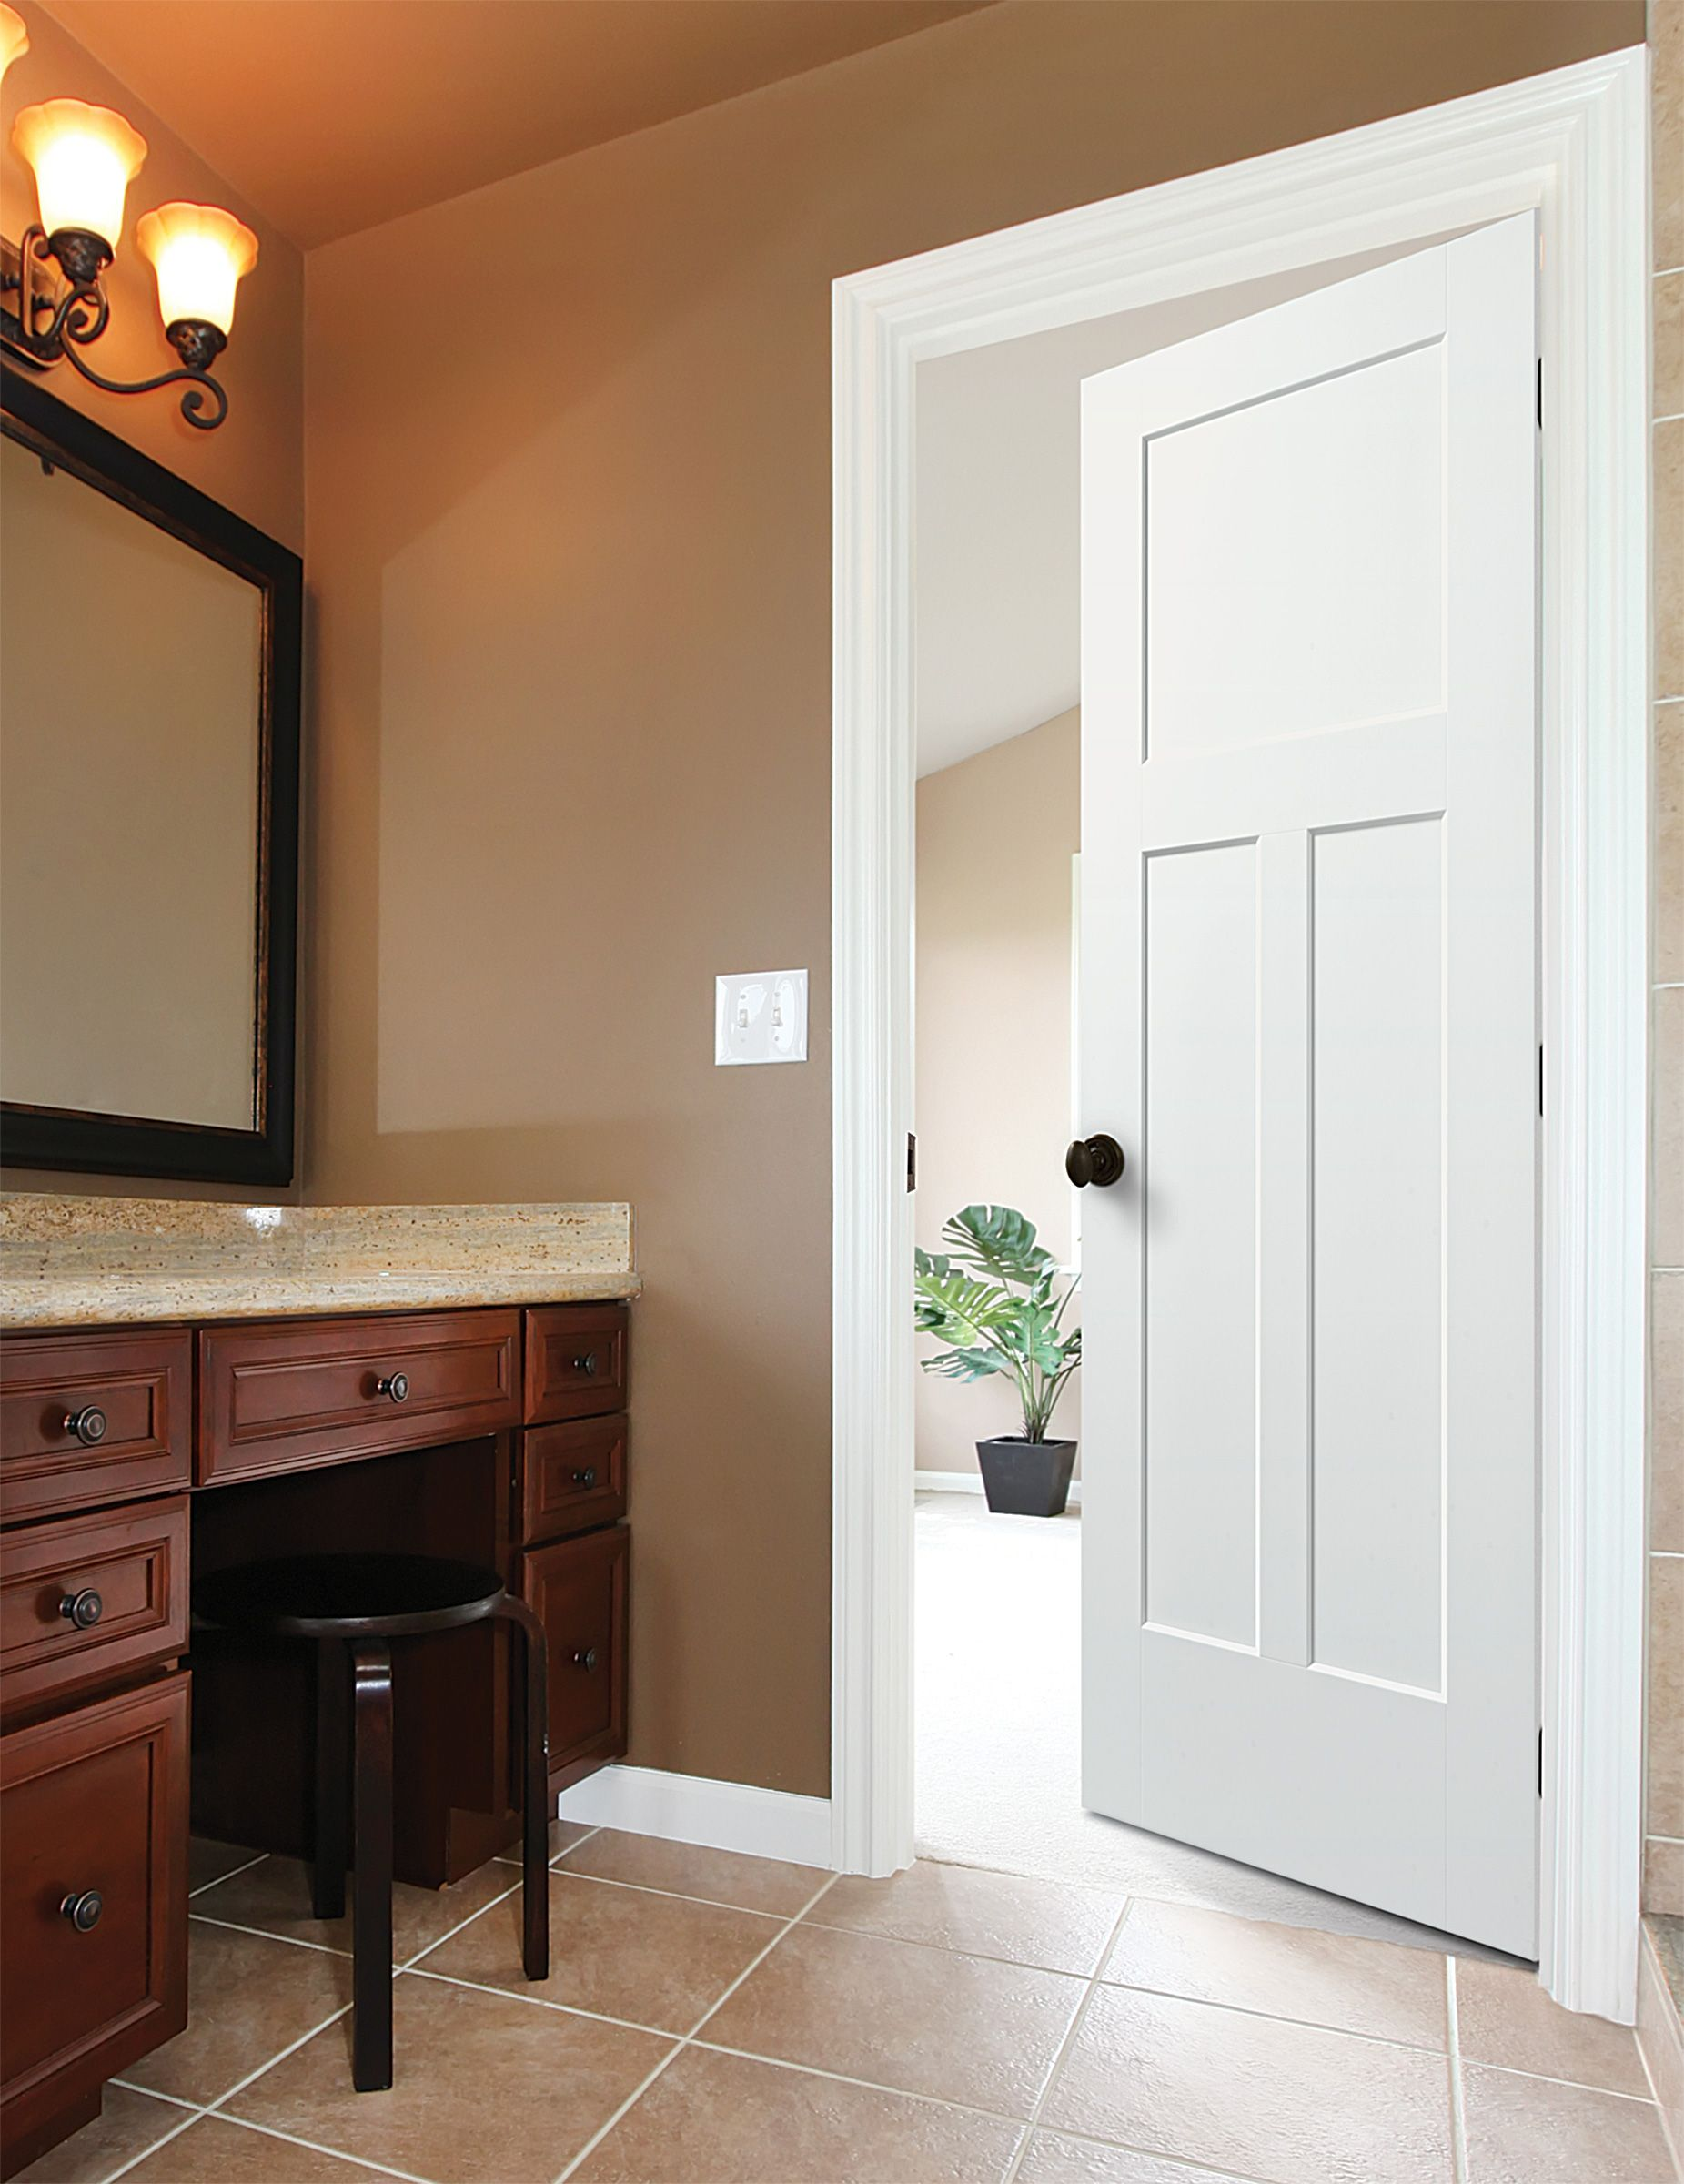 Masonite Heritage Series Winslow Style Craftsman Interior Bathroom Door